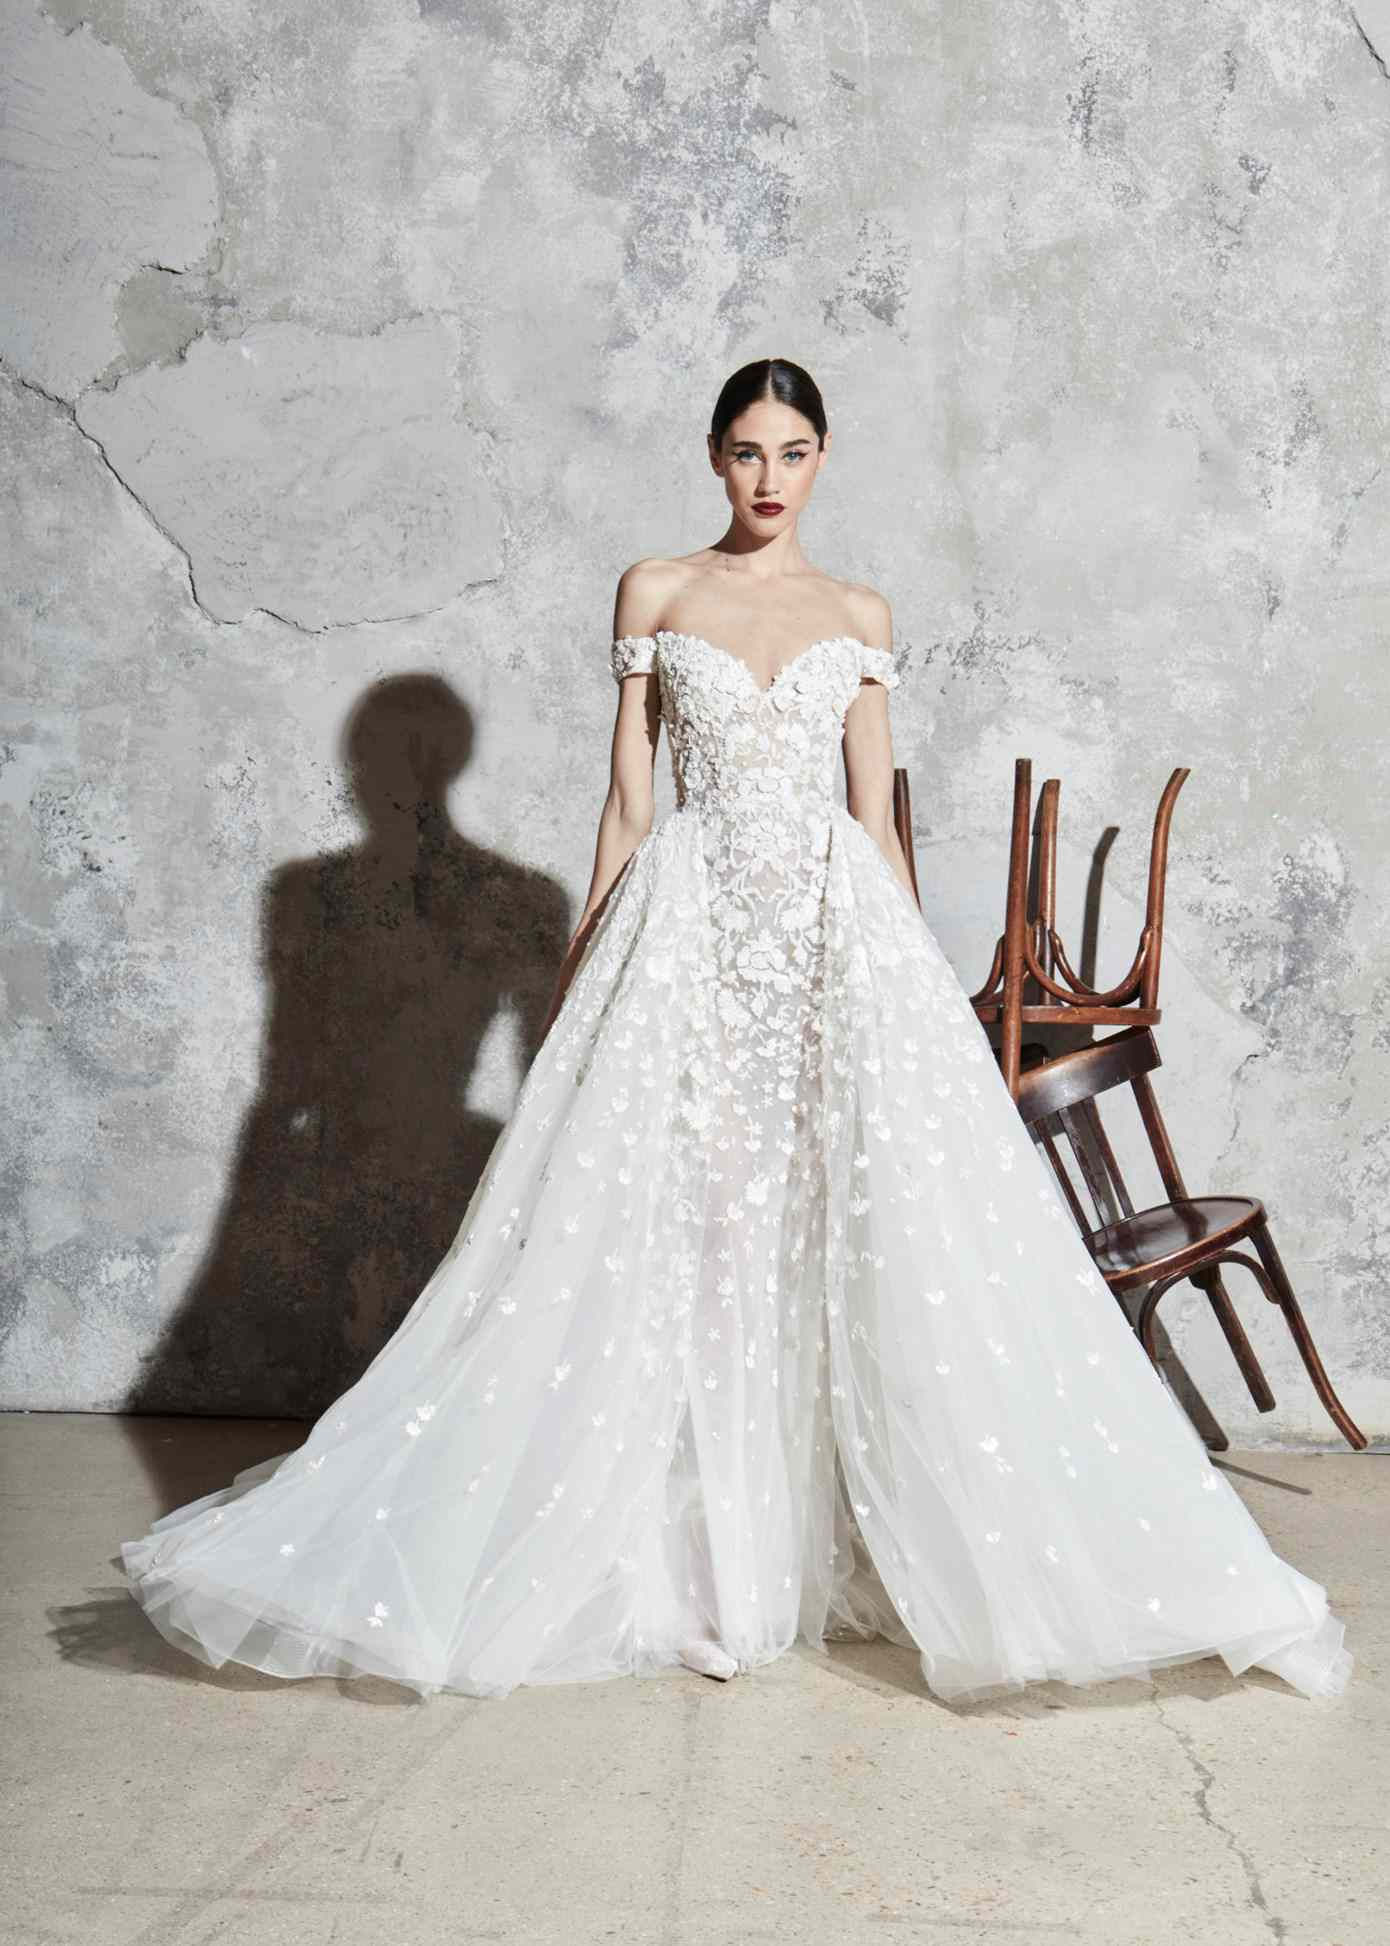 Model in off-the-shoulder tulle ballgown with a sweetheart neckline, floral embroidery and appliques